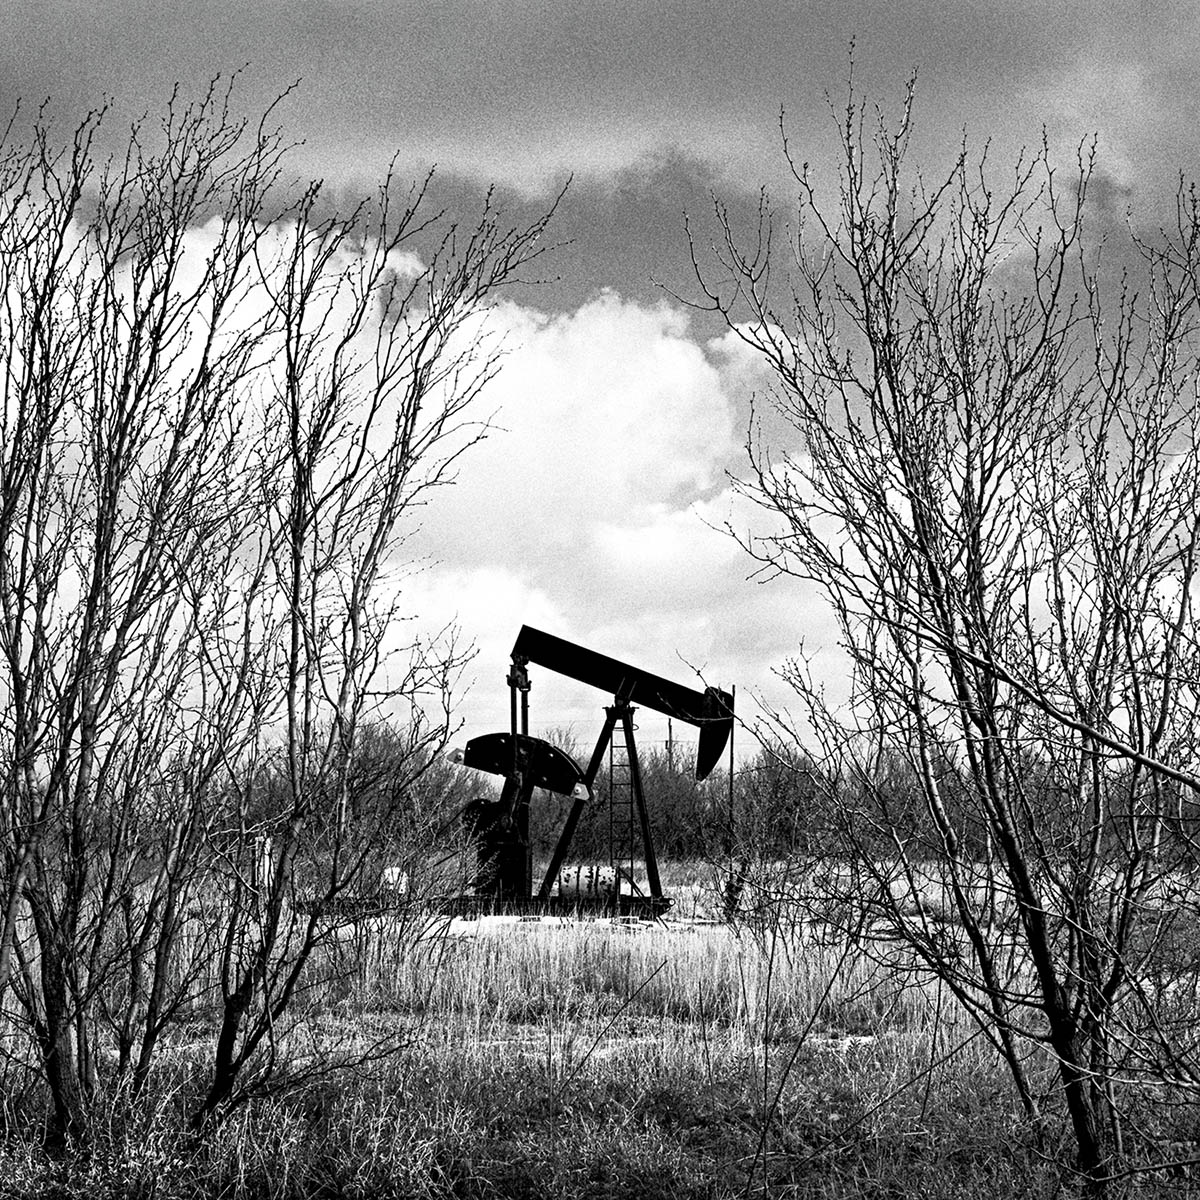 Pump Jack near Abilene, Texas, 1997